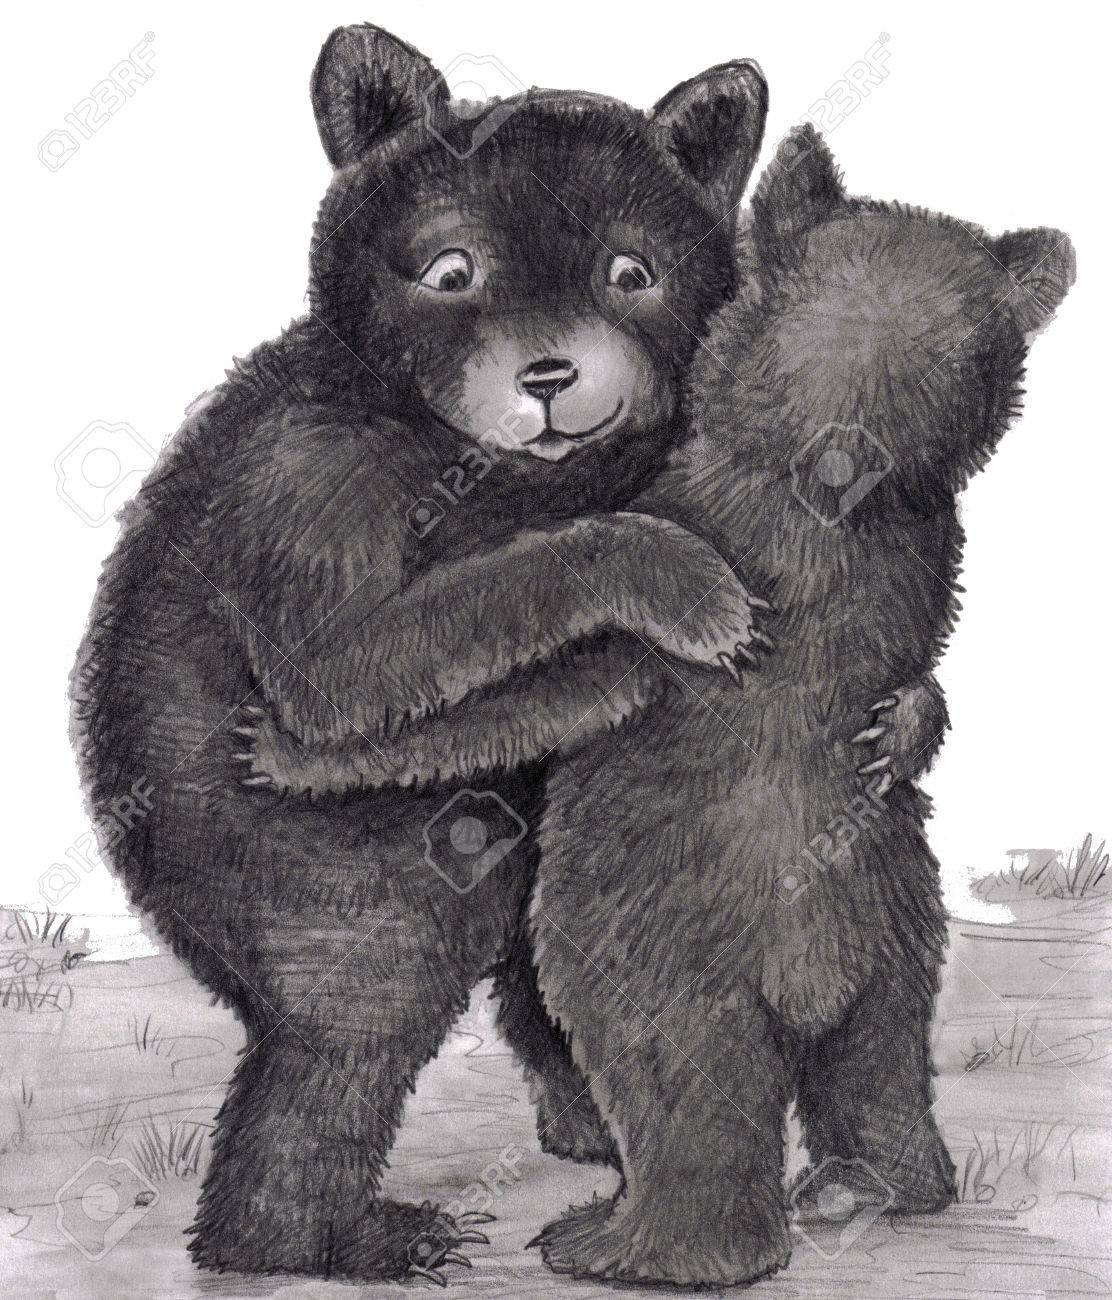 Two bears are standing up, with arms around each other, giving each other a bear hug outdoors in nature during the day. Black, white, gray original illustration. Stock Illustration - 7322012